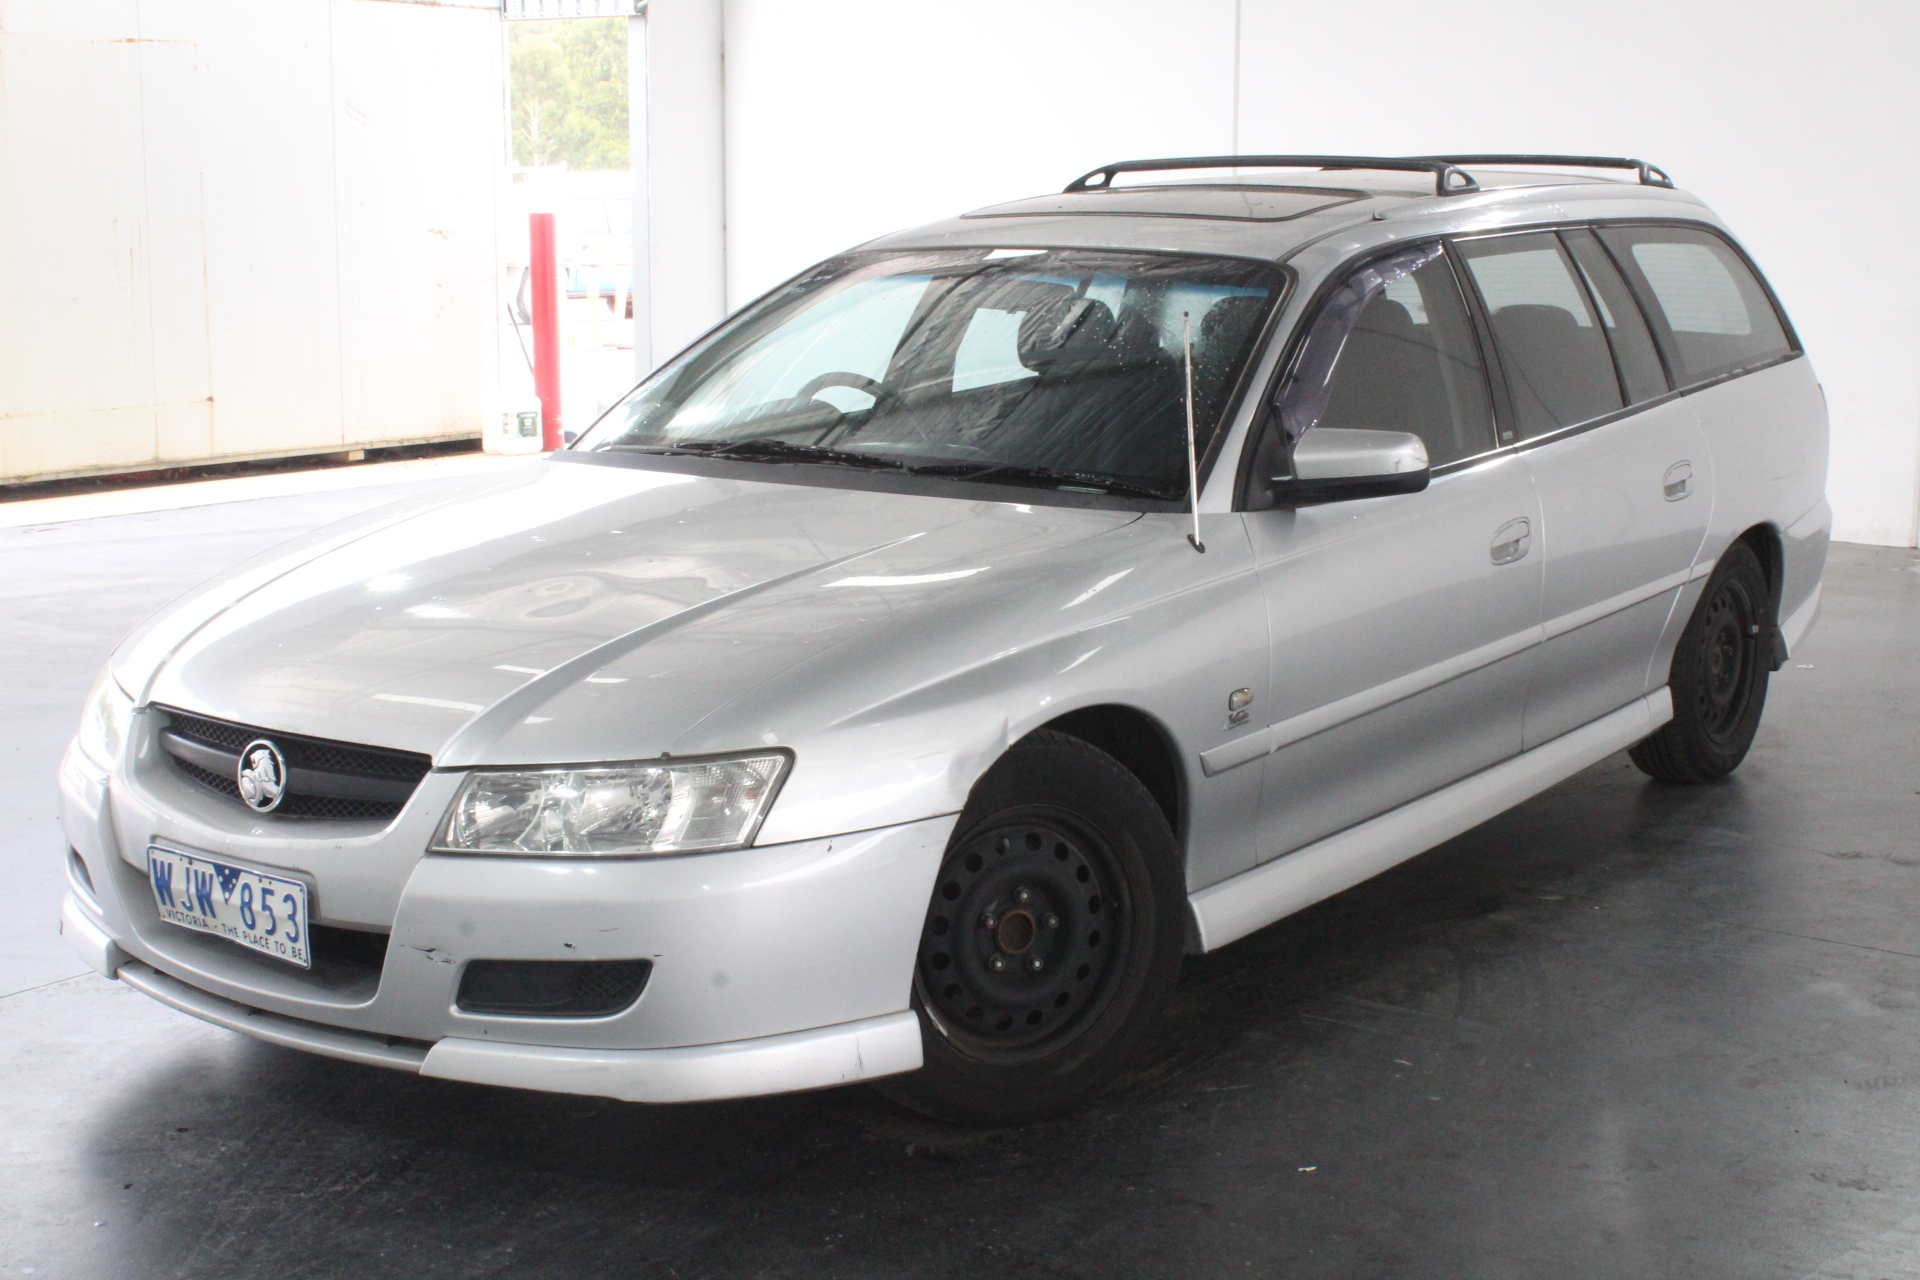 2005 Holden Commodore Equipe VZ Automatic Wagon